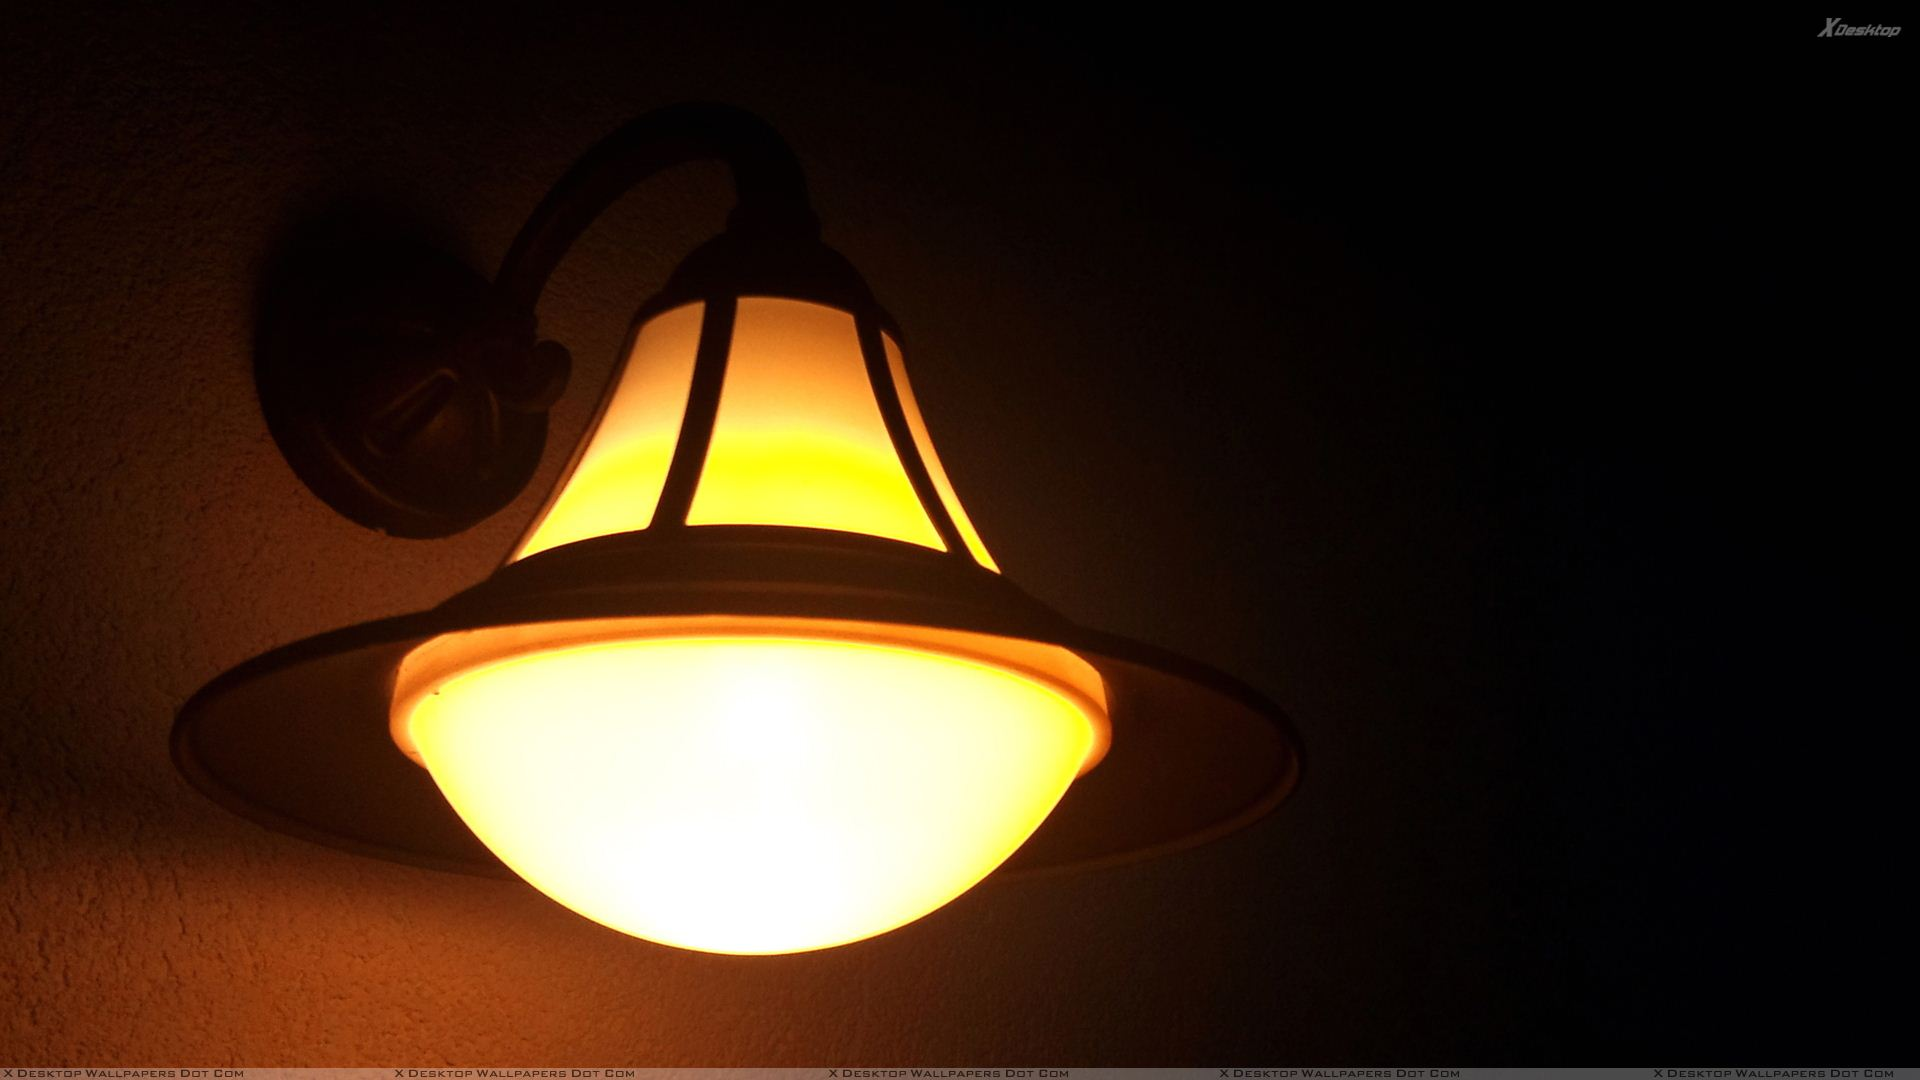 Lamp Closeup At Night Wallpaper